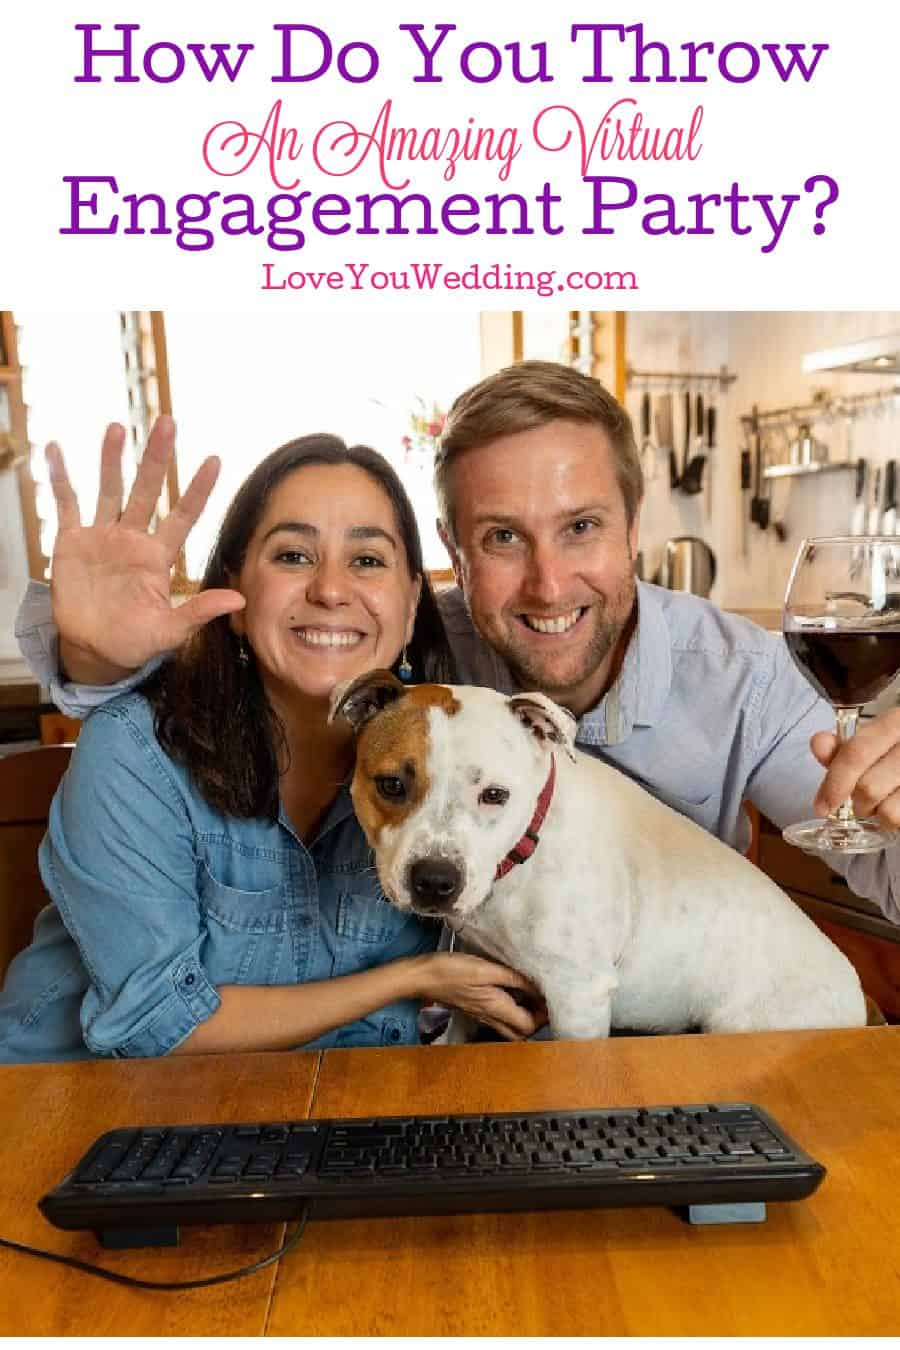 If you're looking to throw a killer virtual engagement party, then you may want to take a look at this complete guide!